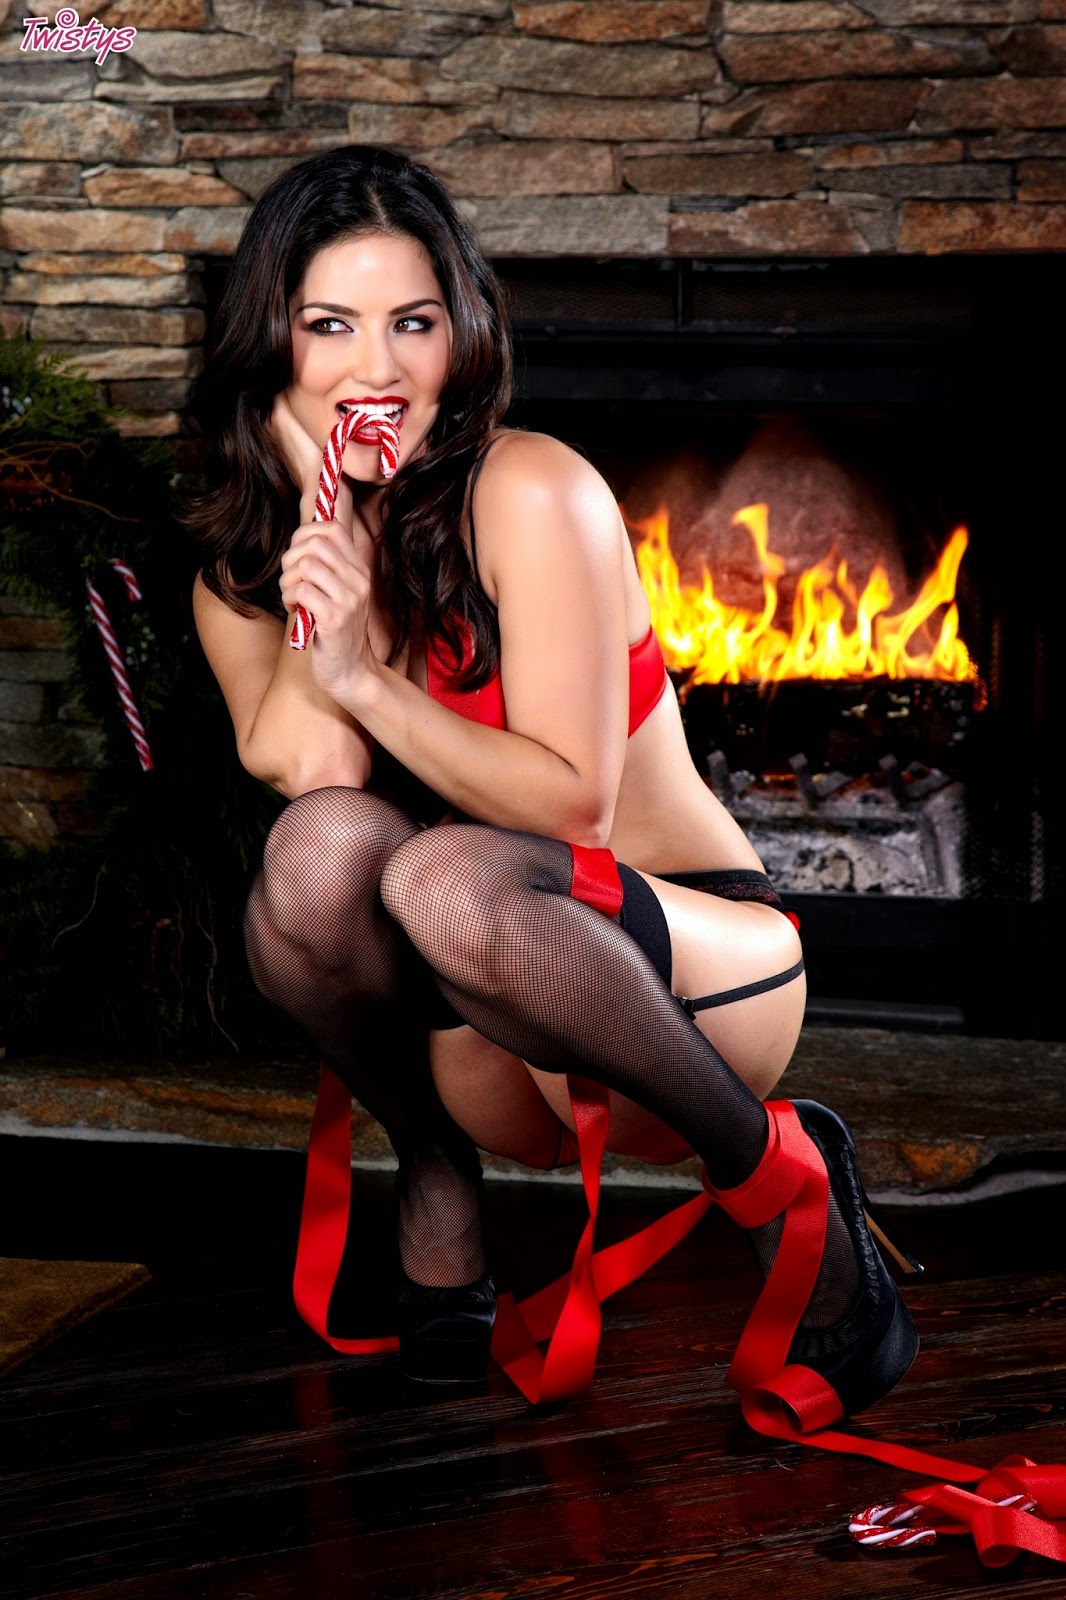 Sunny Leone In Red Lingerie Pictures Free Download -7531